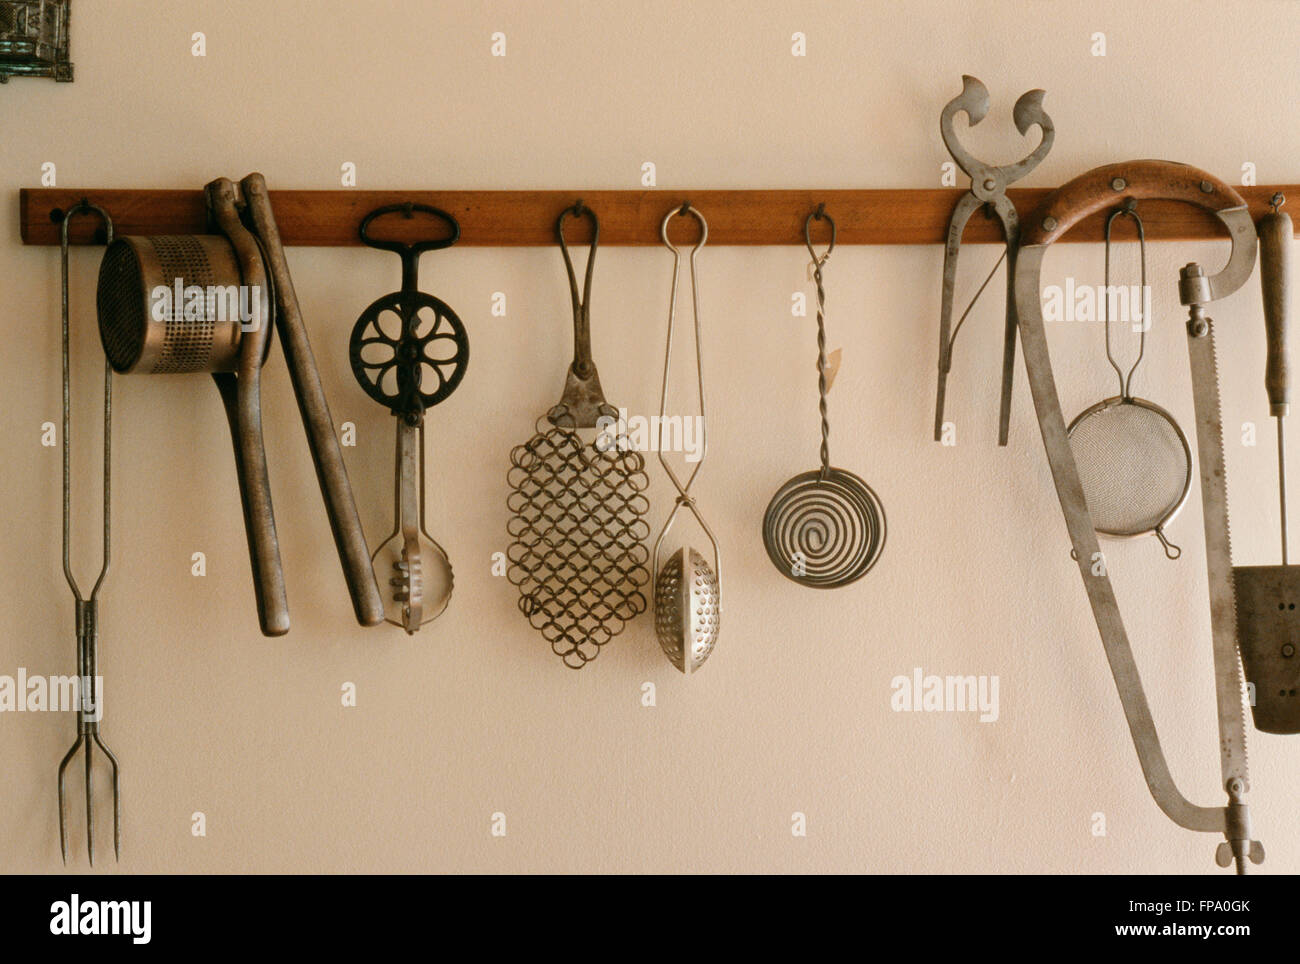 Vintage Kitchen Gadgets; Vintage Kitchen Gadgets Hanging From A Rack    Stock Photo